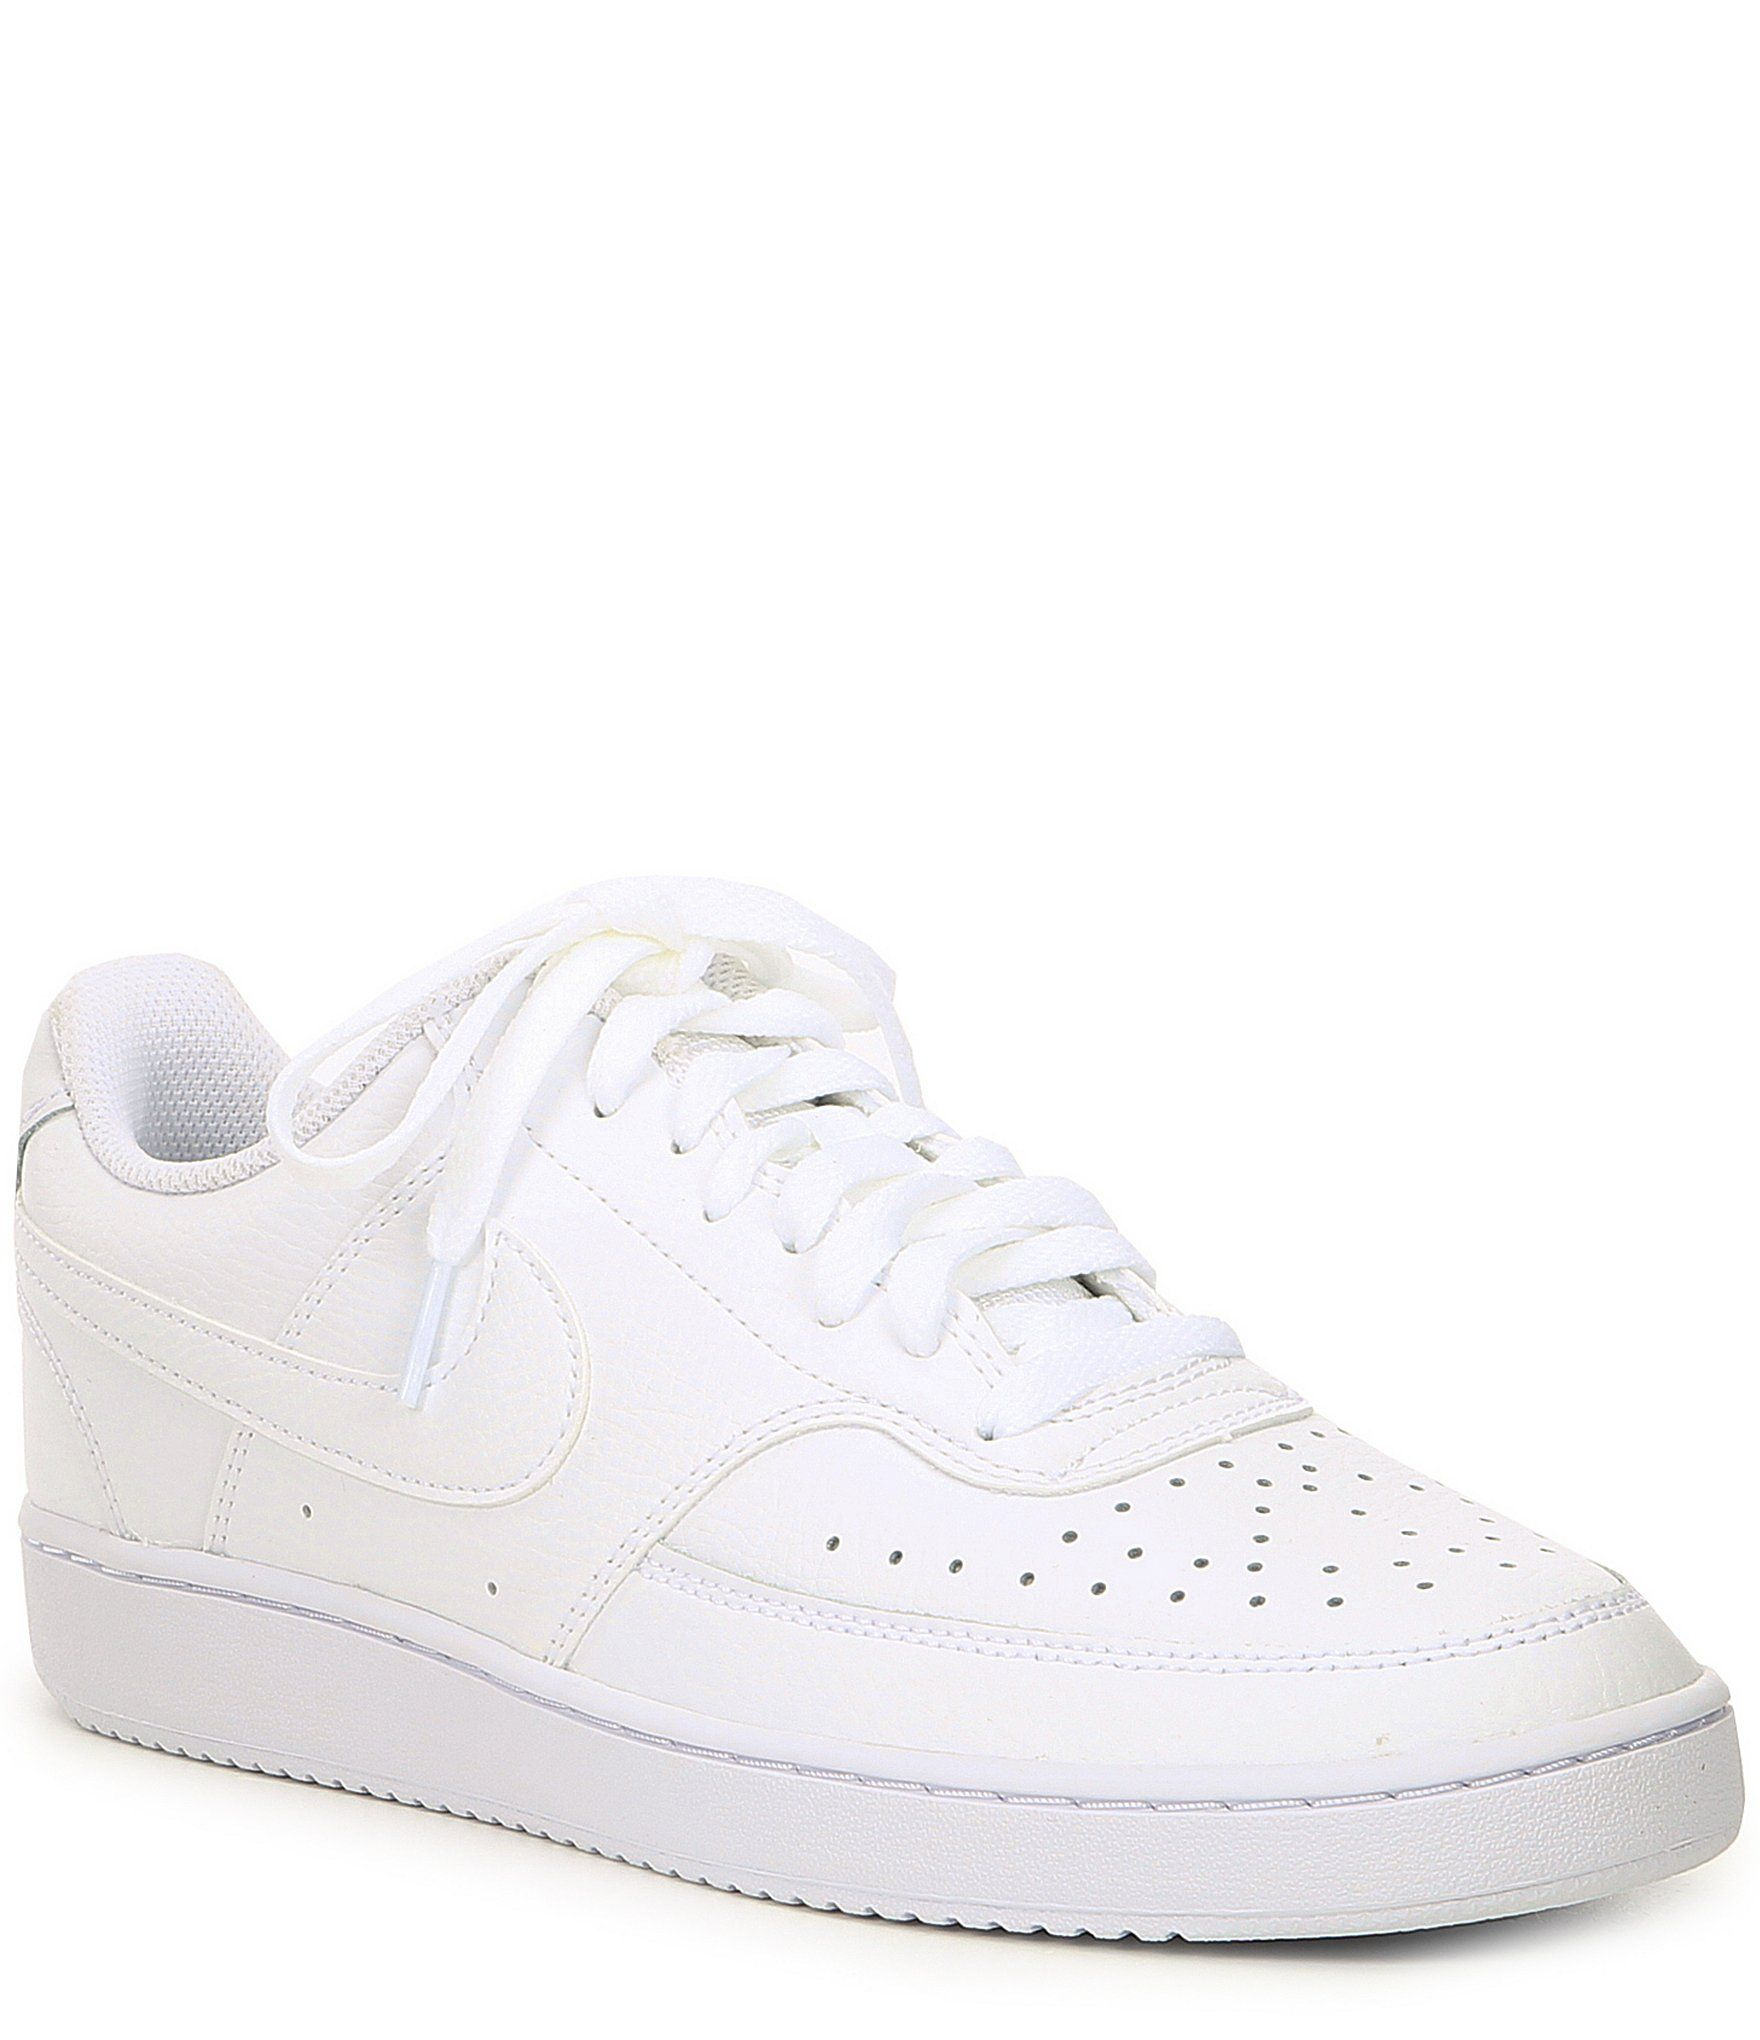 Nike Air Force 1 Low WhiteWhite Court Green | Nike | Sole